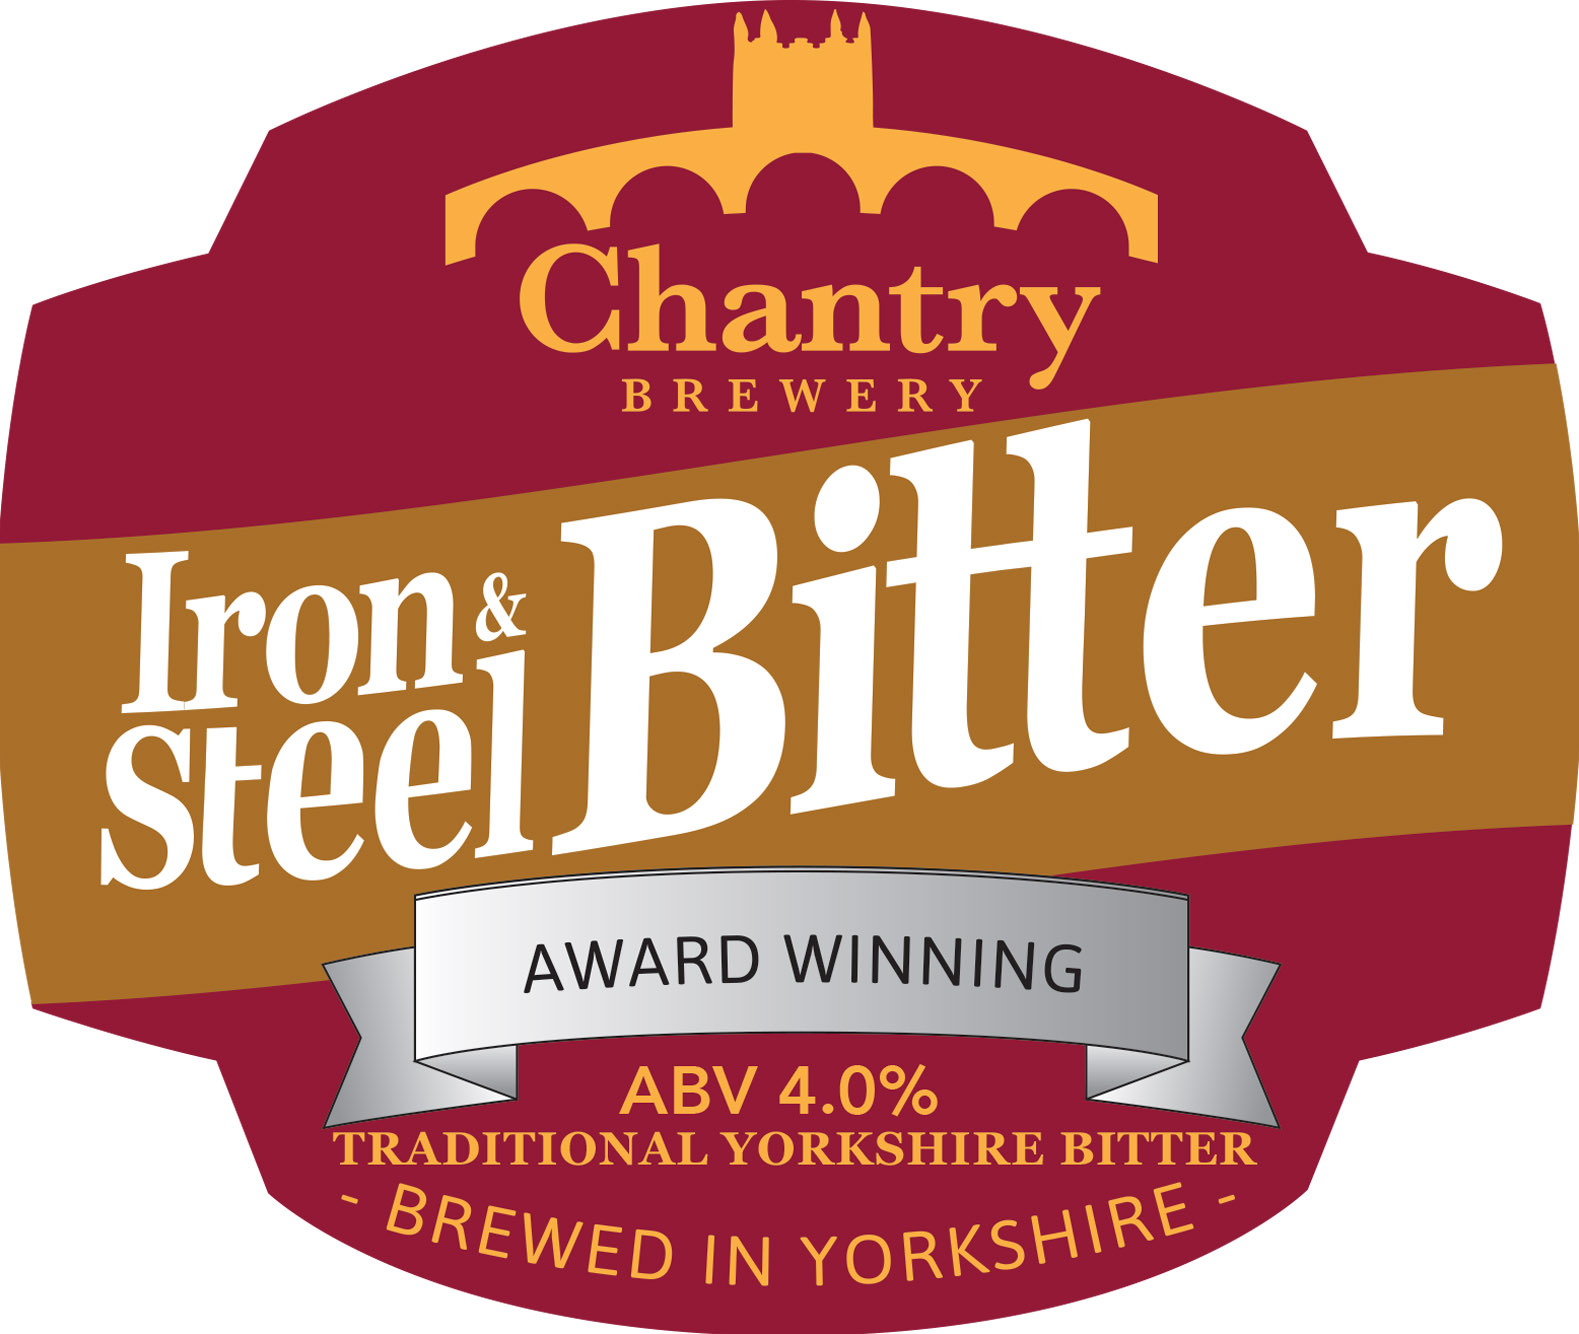 Chantry Brewery Iron and Steel